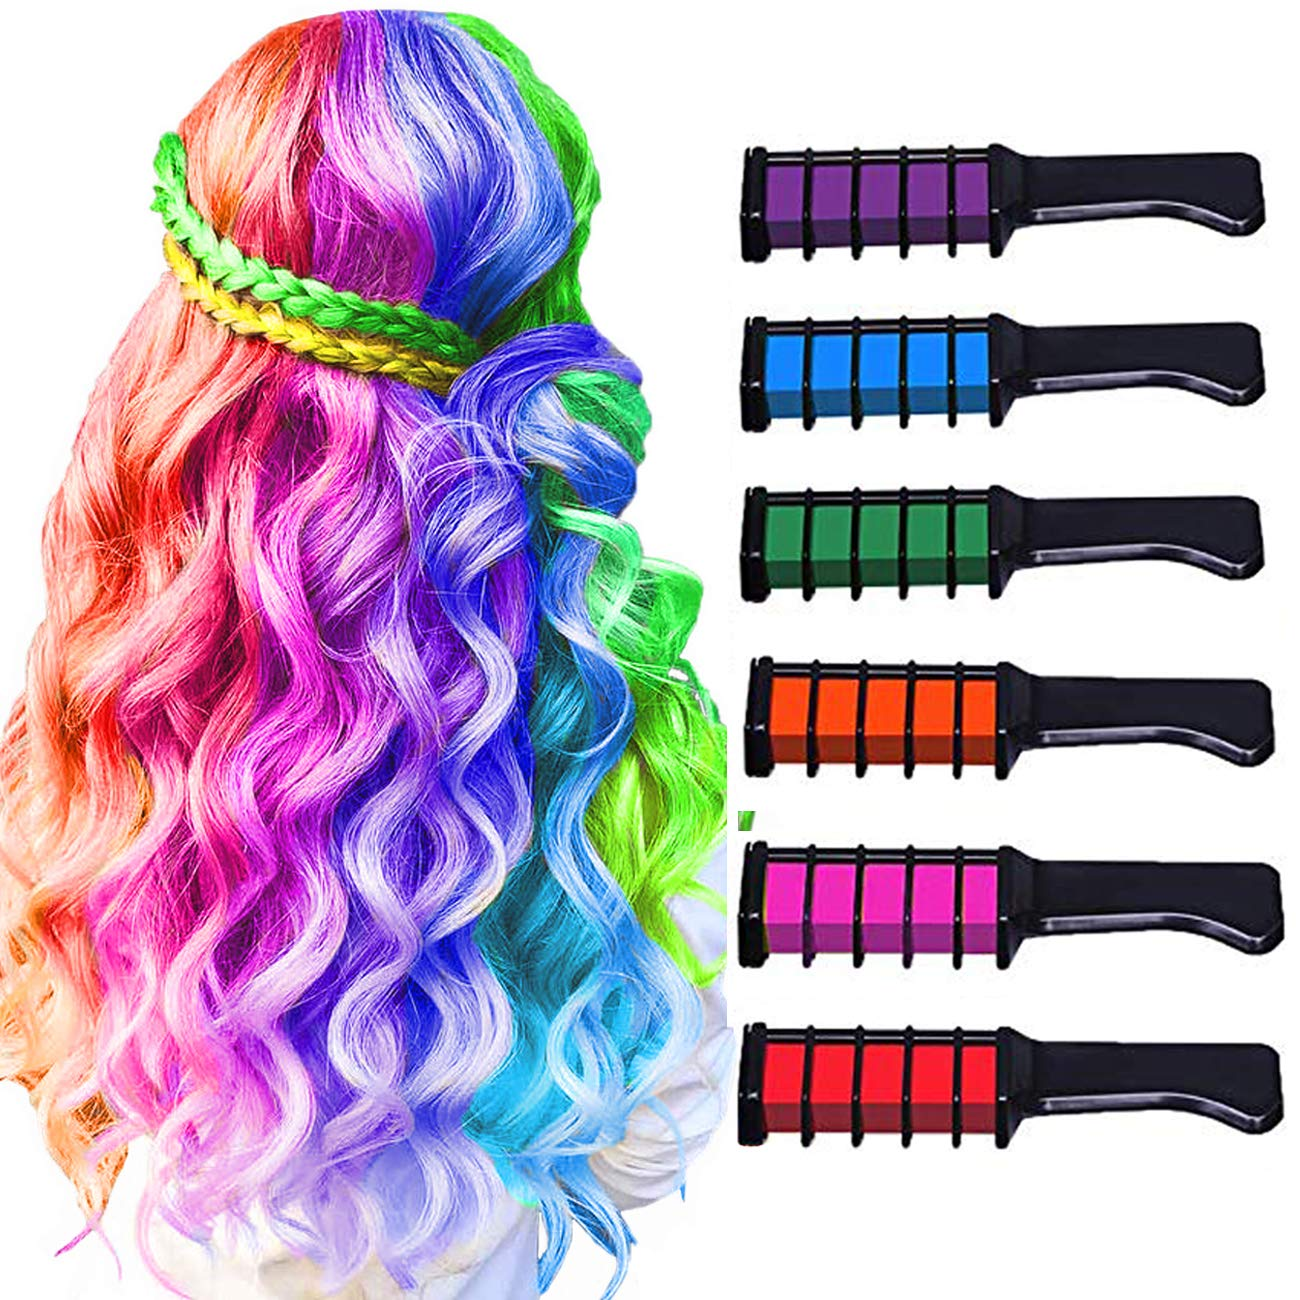 Hair Chalk for Girls Christmas Gift,Temporary Bright Washable Hair Color for Kids, Hair Chalk Comb Gift for Girls Age 4 5 6 7 8 9 10+ on Birthday Cosplay Christmas Parties